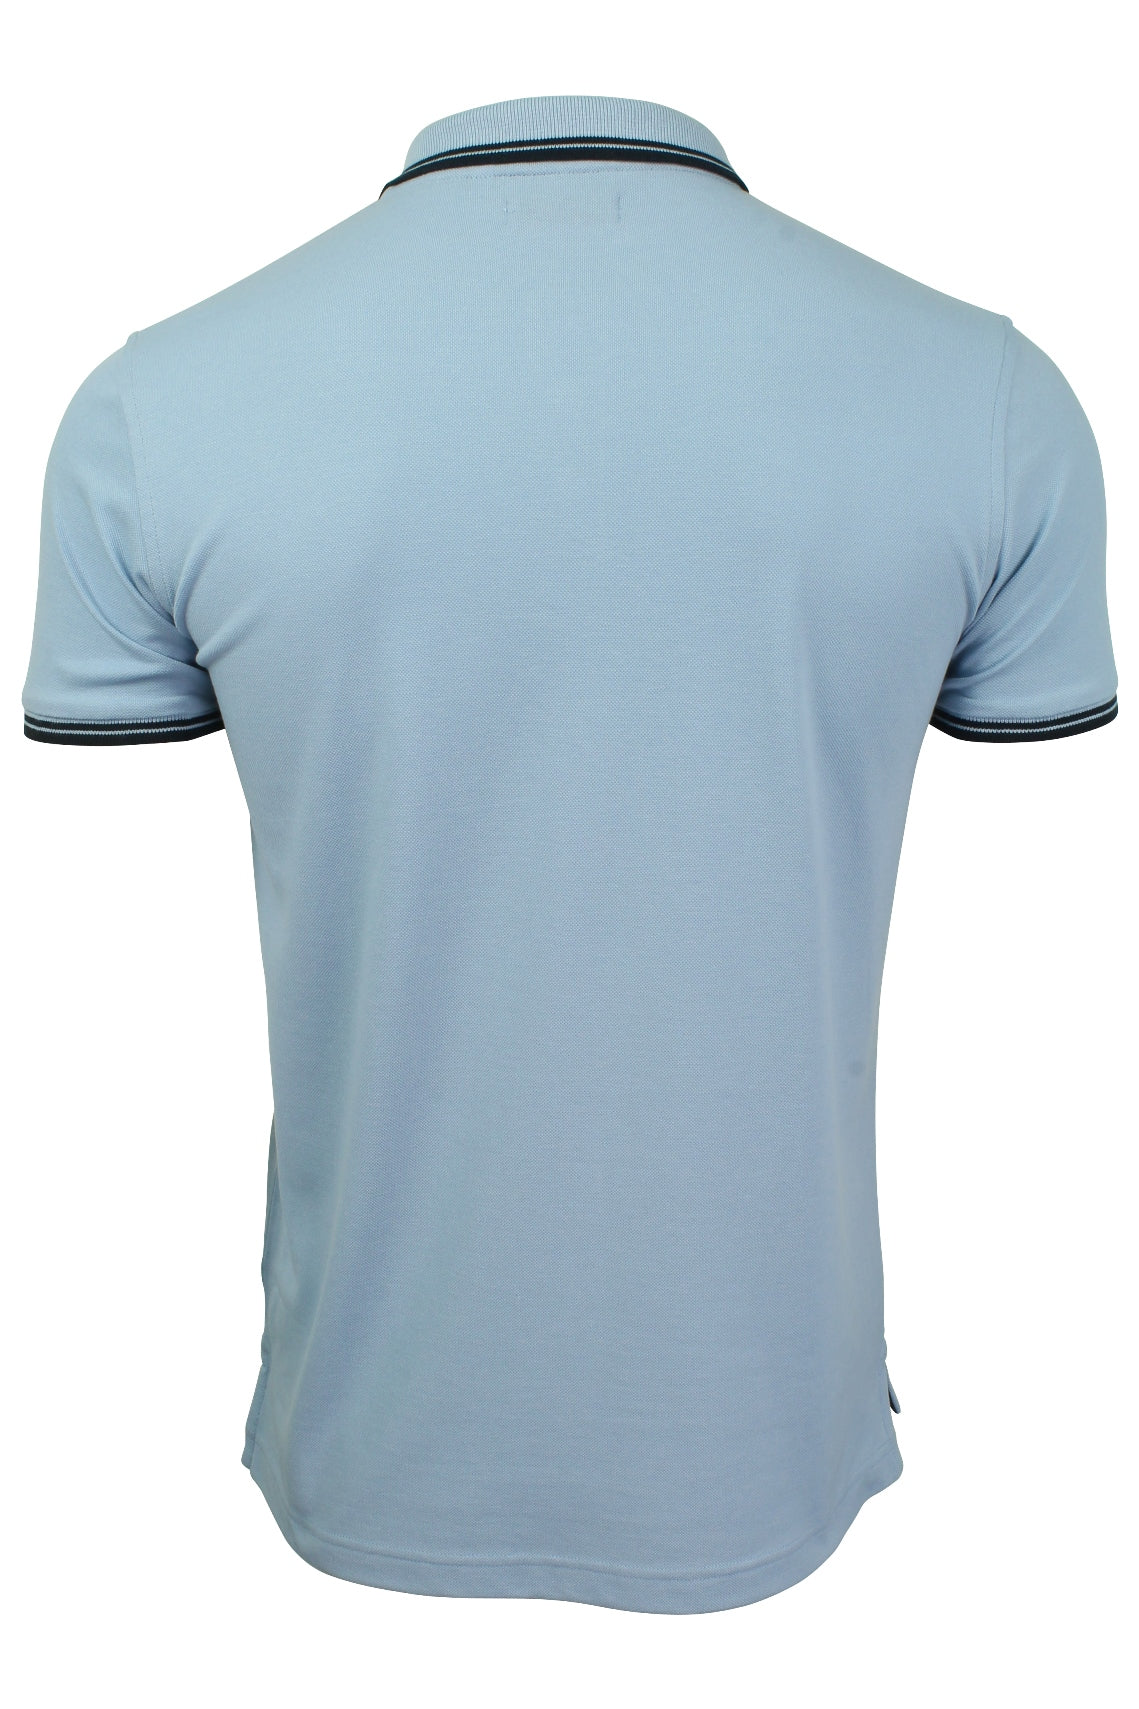 Xact Mens Hero Polo T-Shirt Short Sleeved Tipped collar Pique Fabric-3